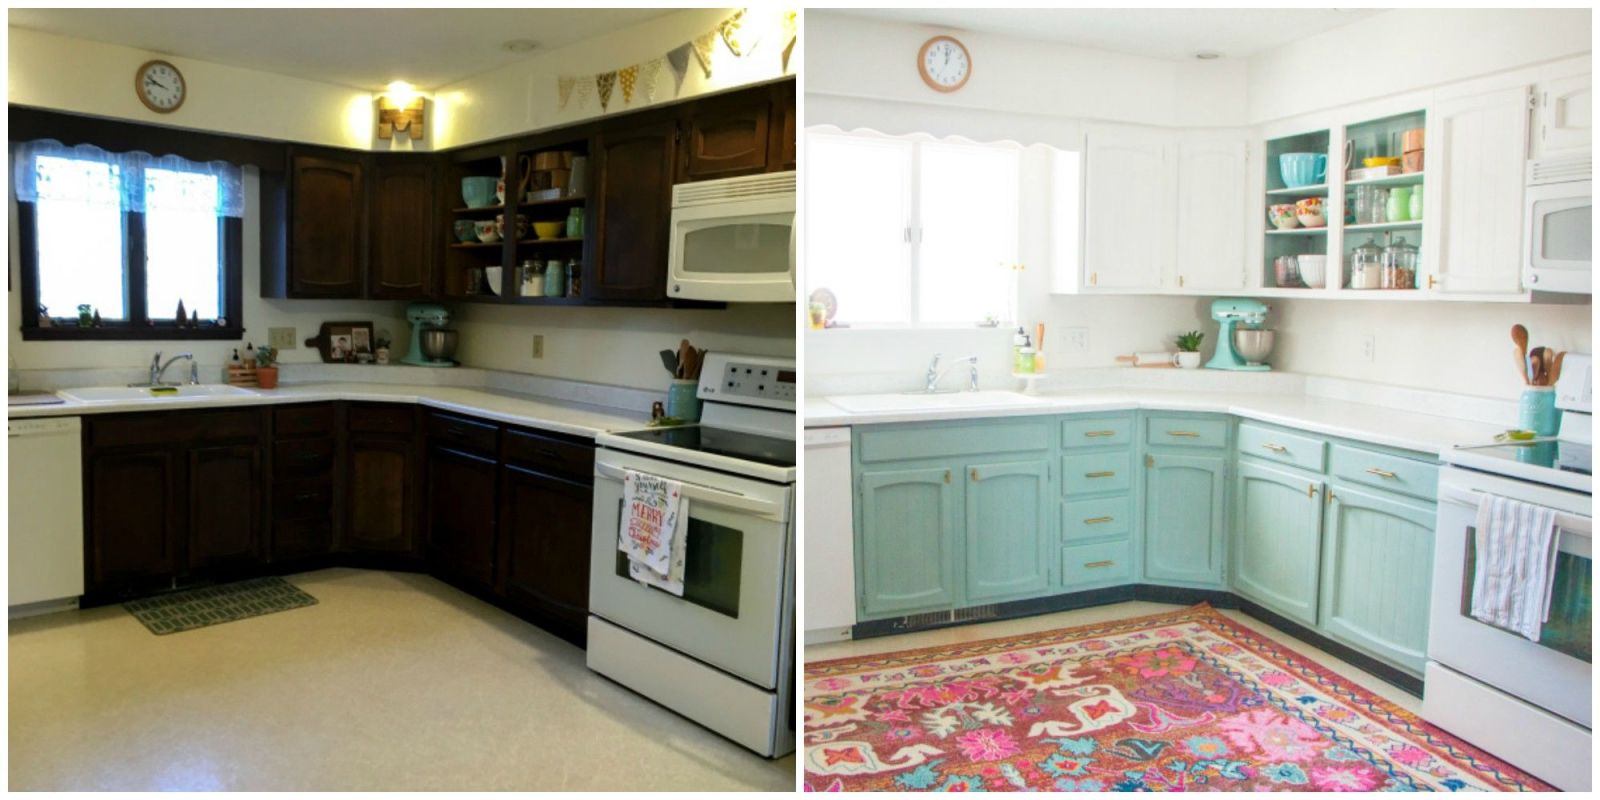 home makeovers - Kitchen Renovation Designs